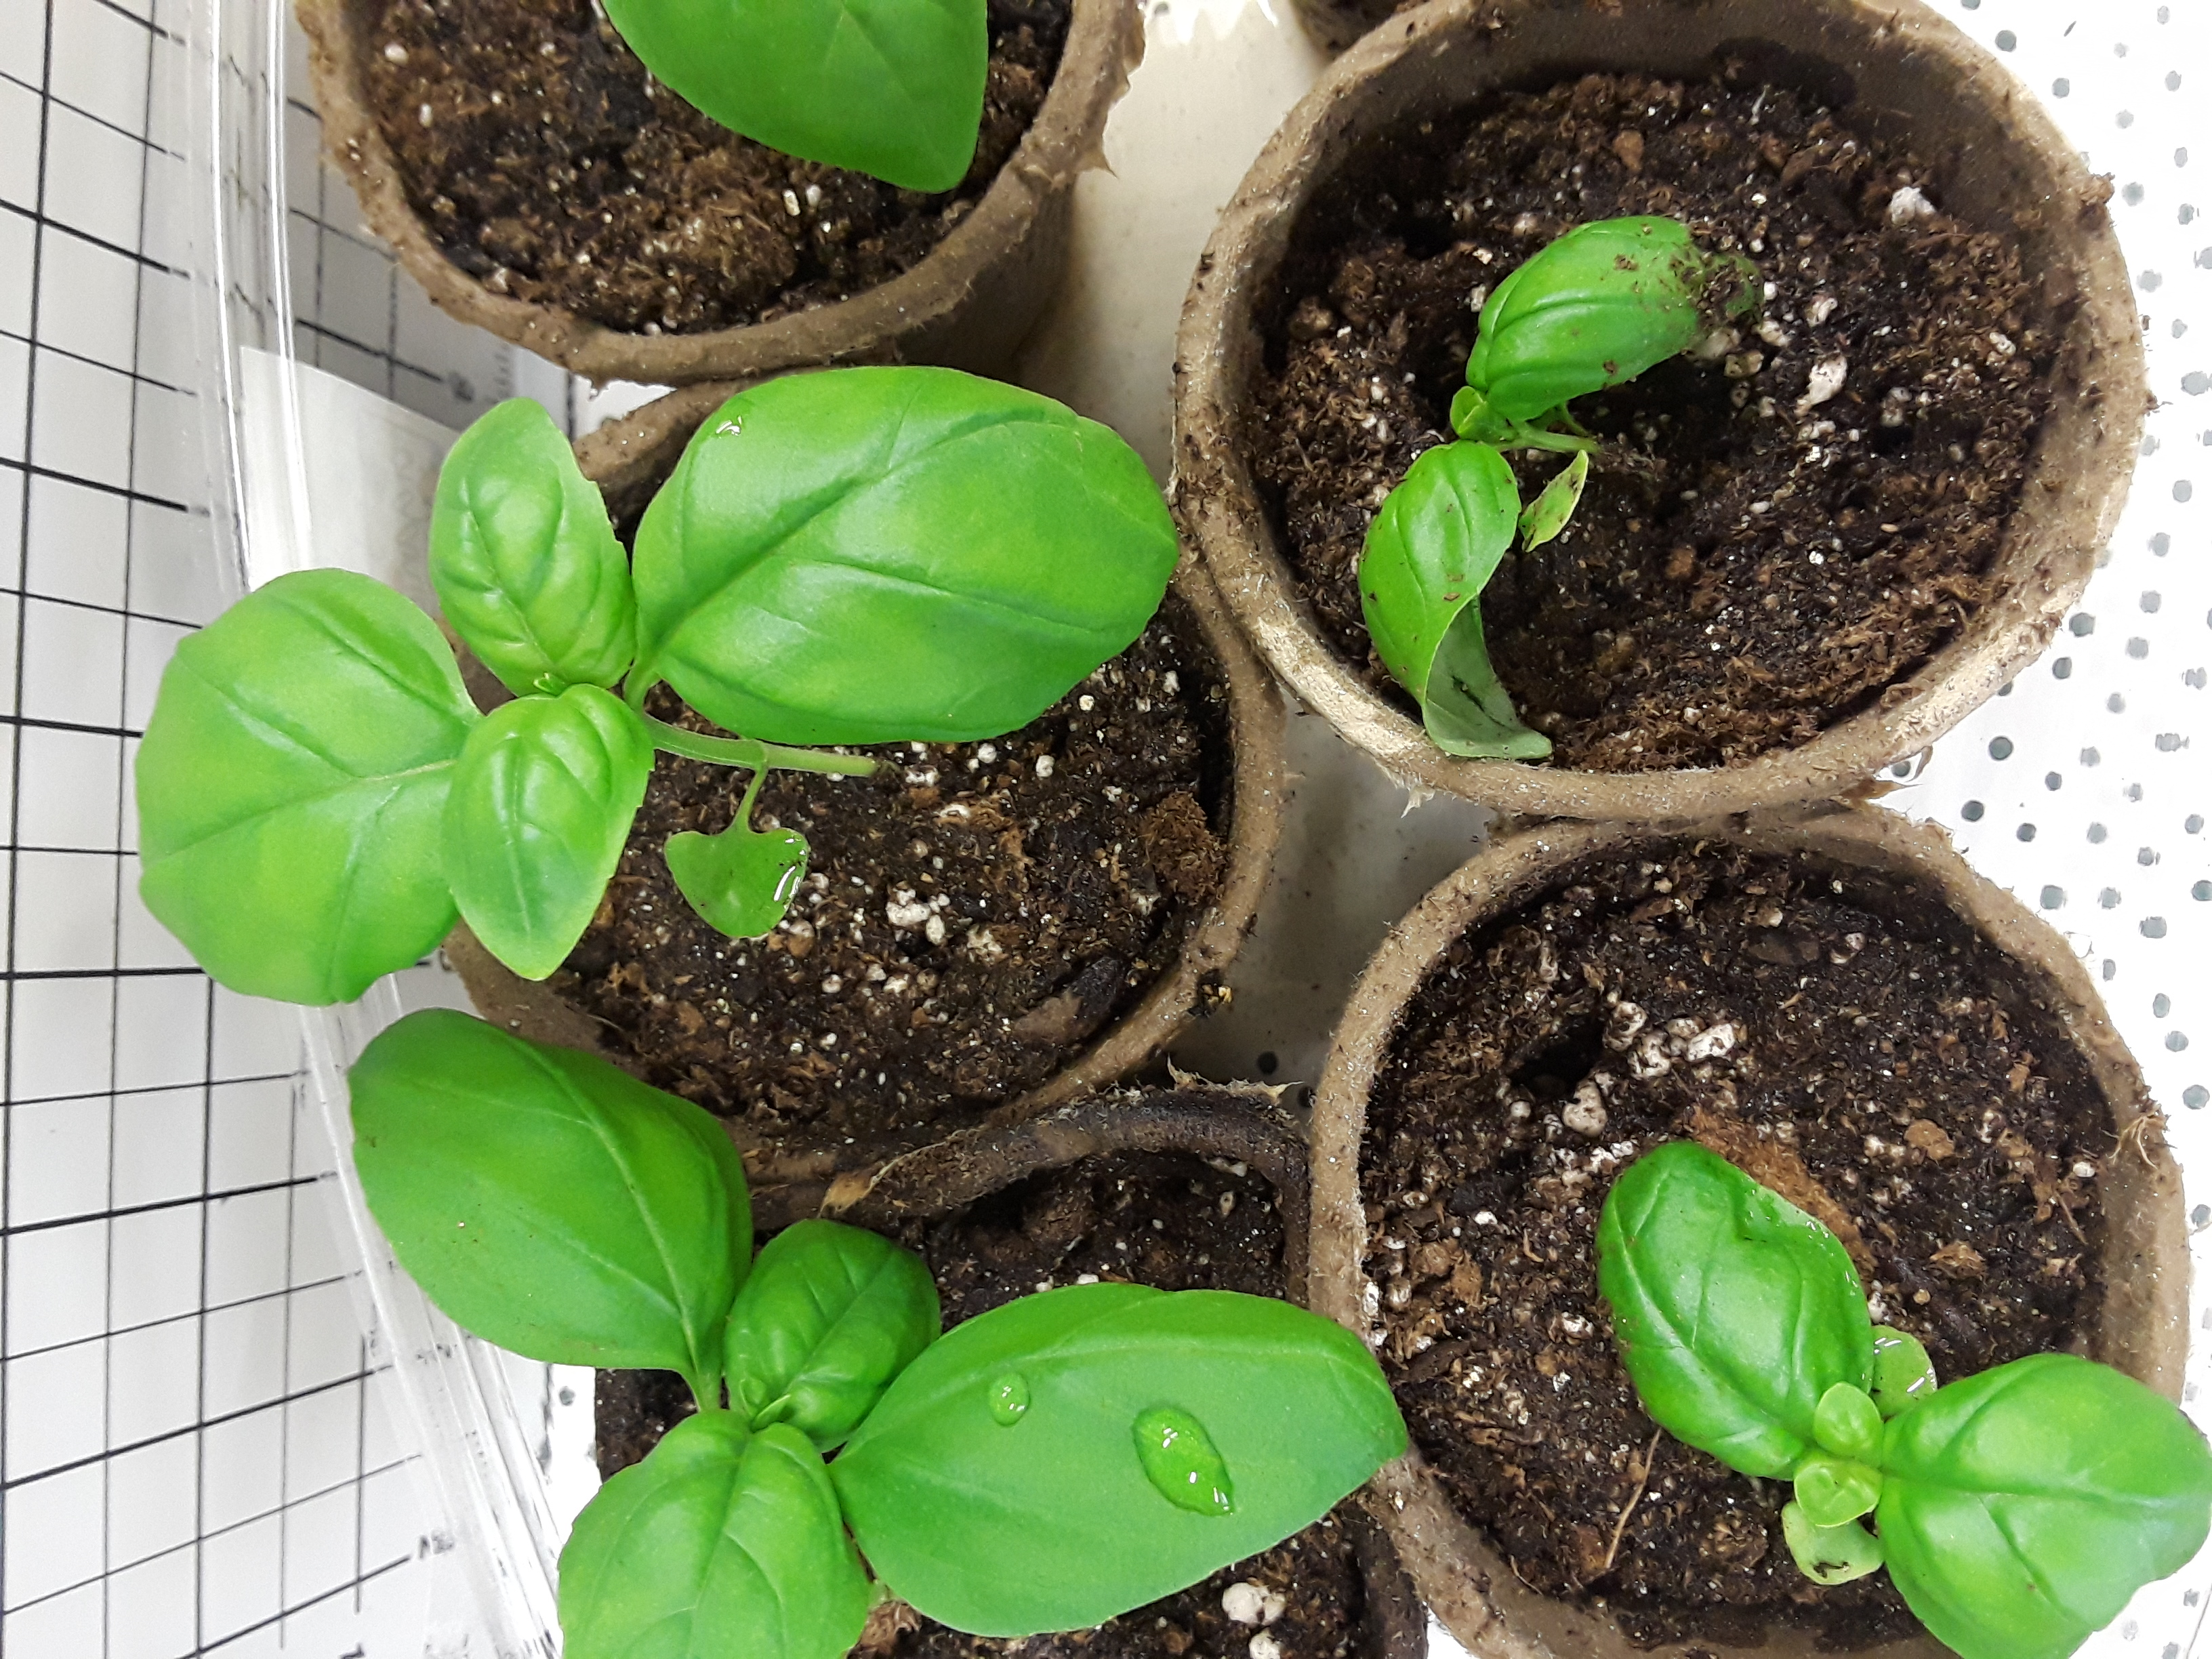 Basil plants at 3 weeks are getting broad leaves and are ready to move to bigger pots